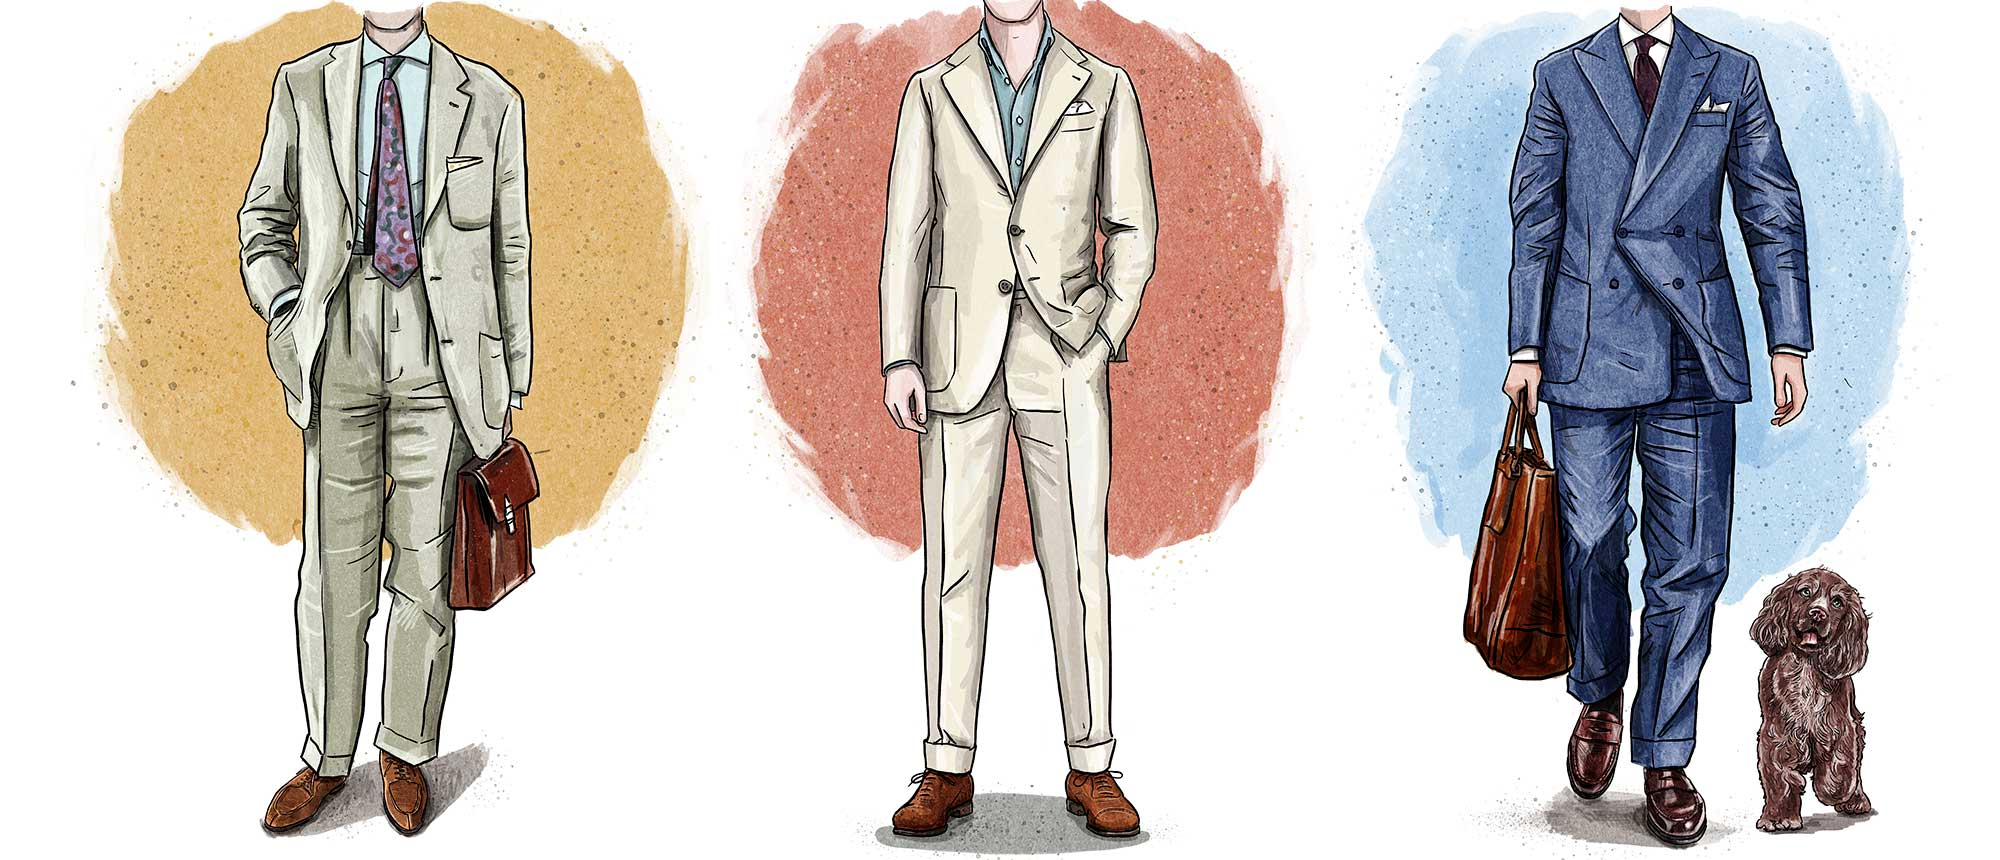 Crockett & Jones - How to Style Summer Suits with Shoes